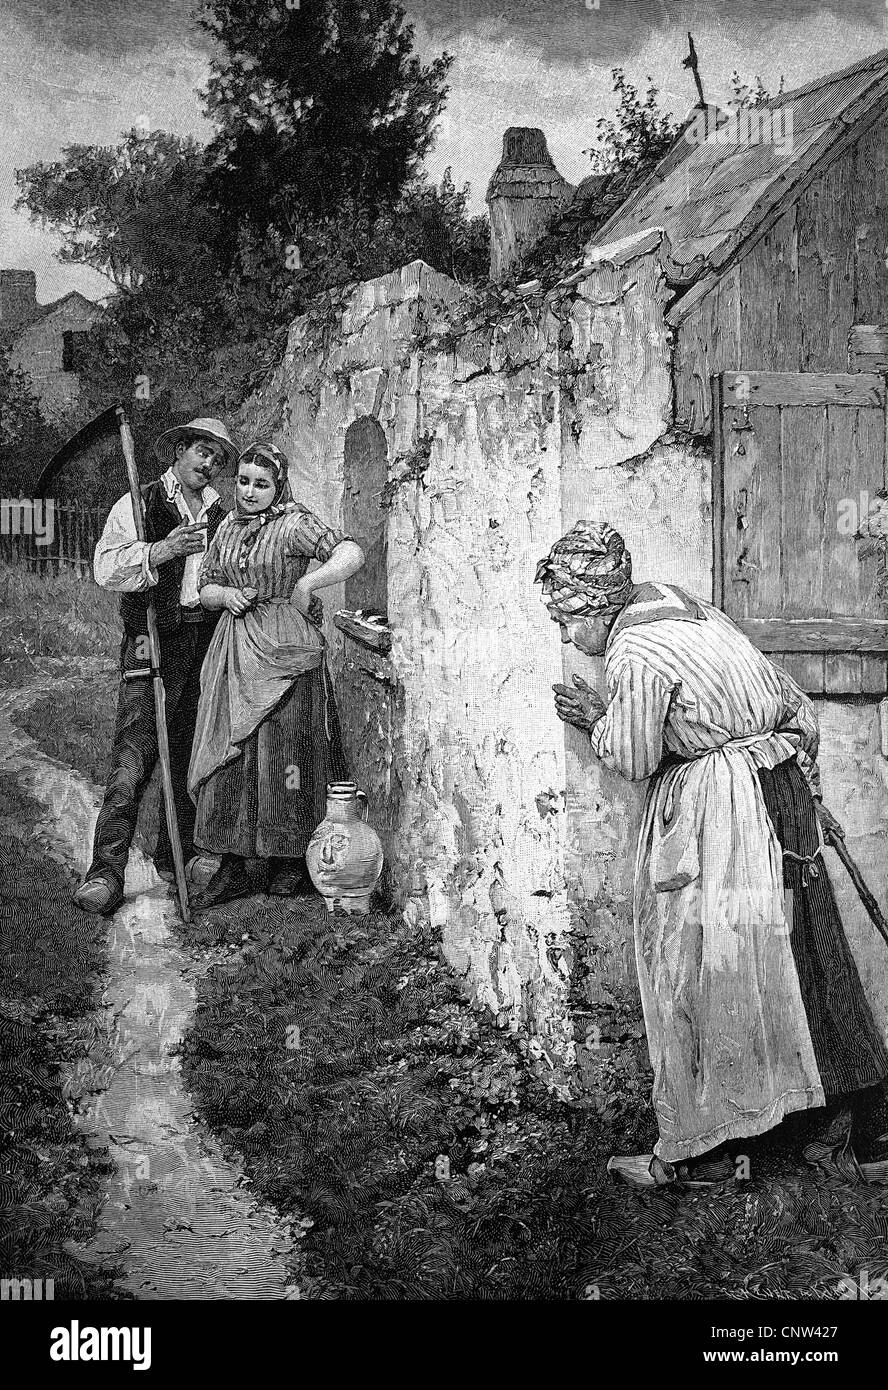 Elderly woman eavesdropping on a couple, historical wood engraving, 1886 - Stock Image